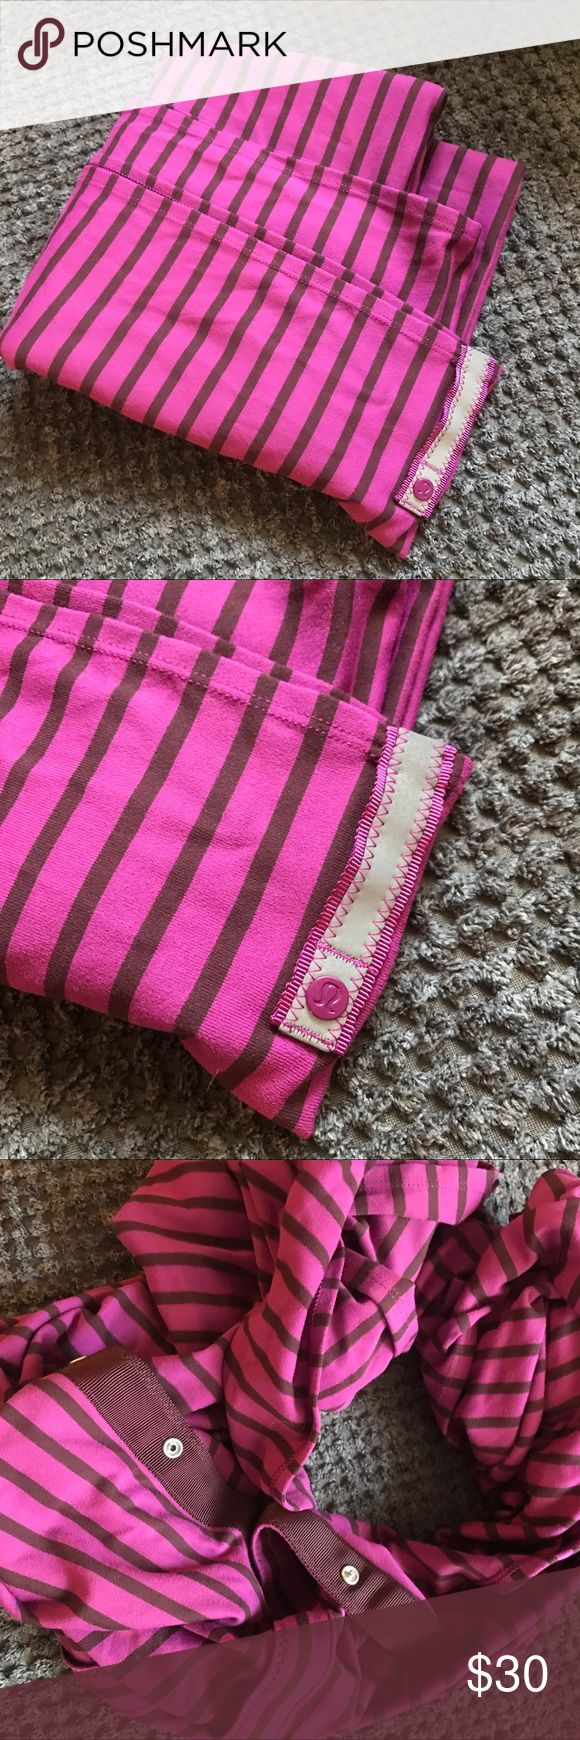 Lululemon Scarf Thick lululemon scarf. Pink and purple stripes with buttons. Super cute on! lululemon athletica Accessories Scarves & Wraps